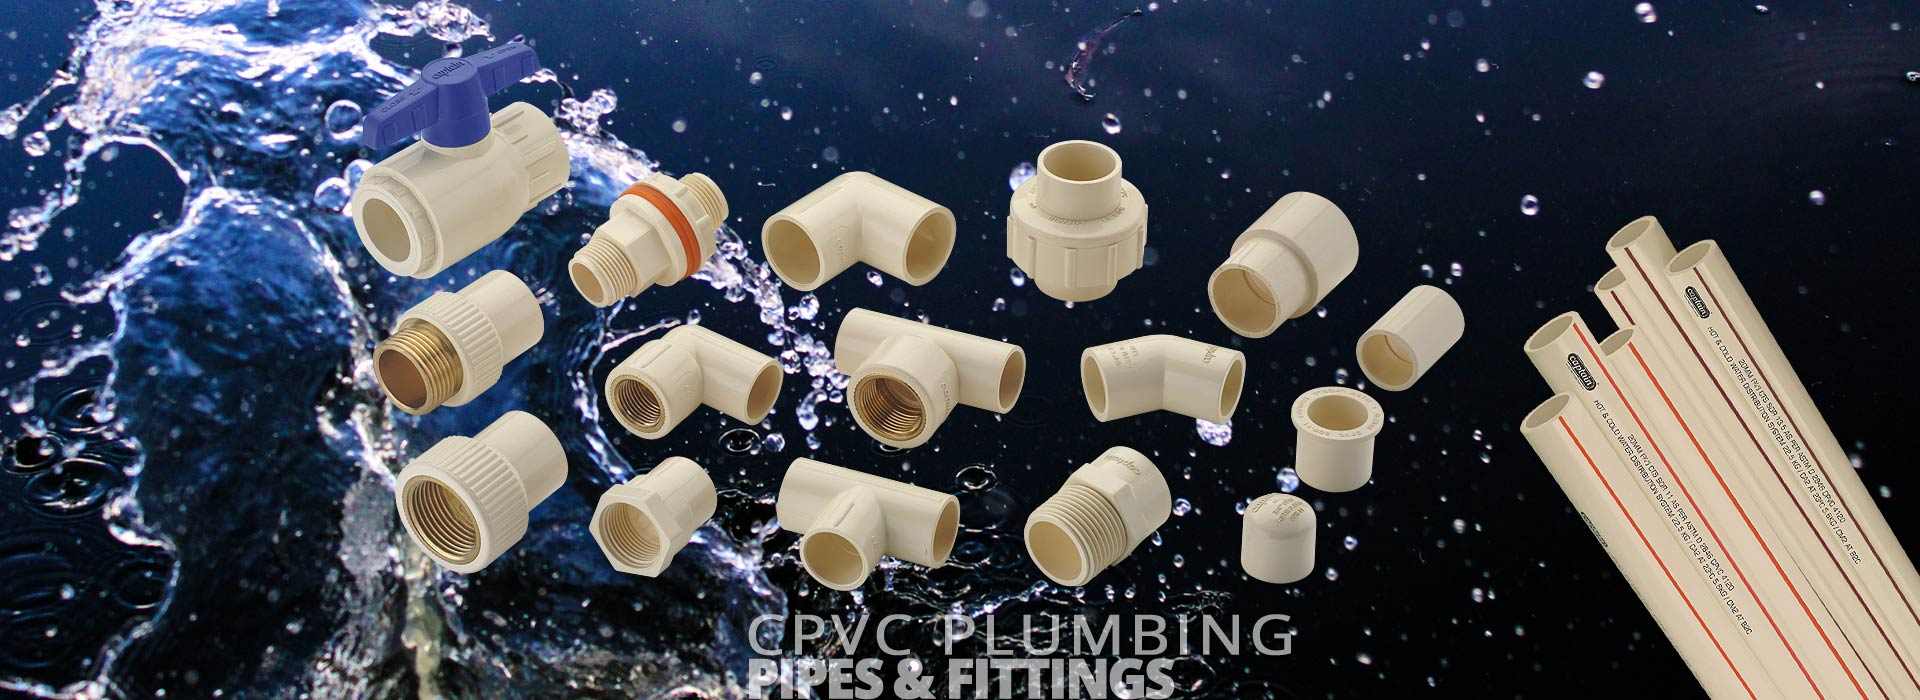 CPVC Plumbing Pipes and Fittings from Captain Pipes Ltd.